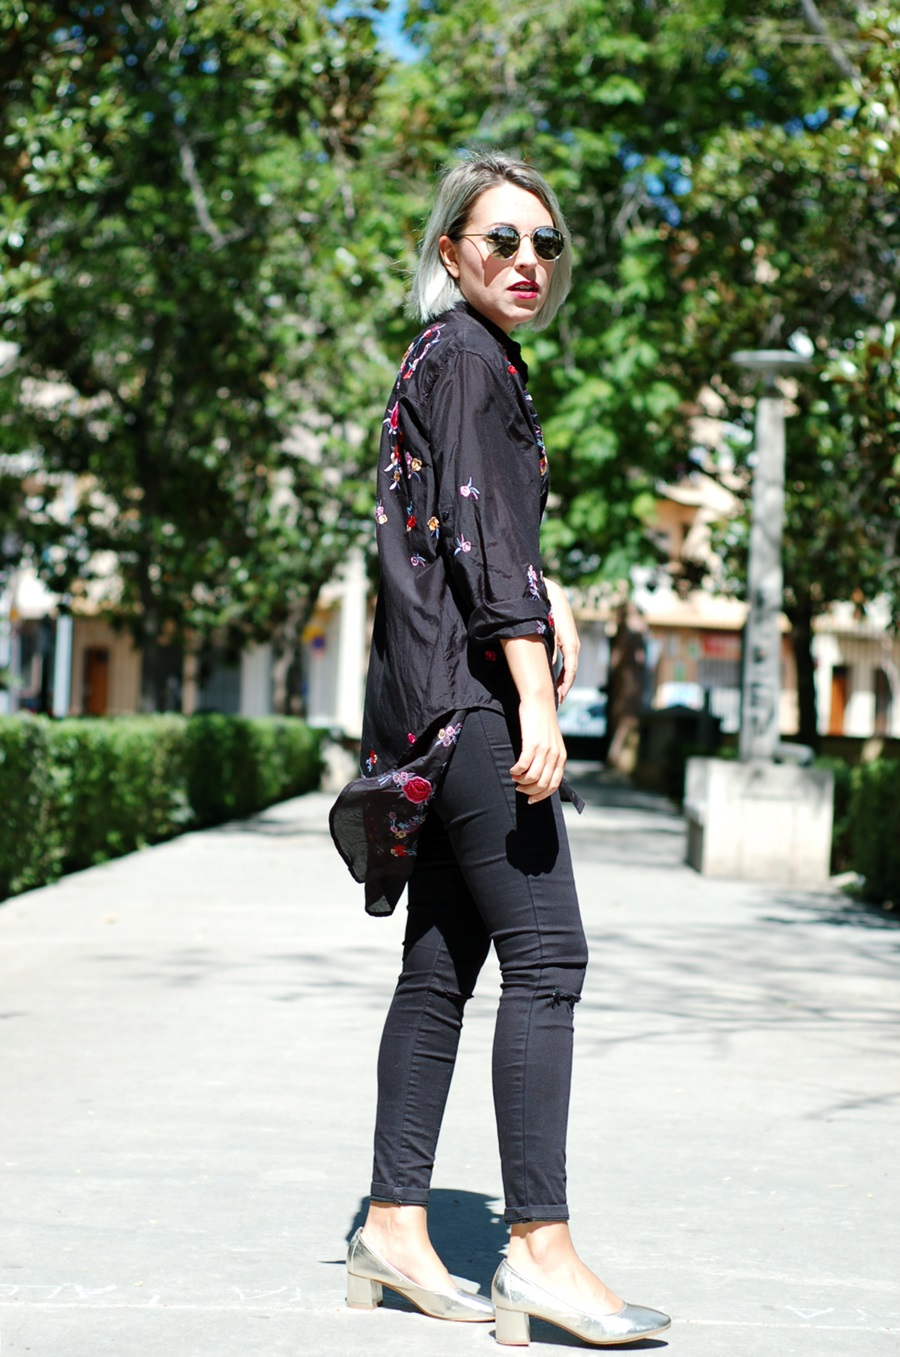 embroidered shirt Zara, granny shoes Pimkie sunnies Cheapass littledreamsbyr